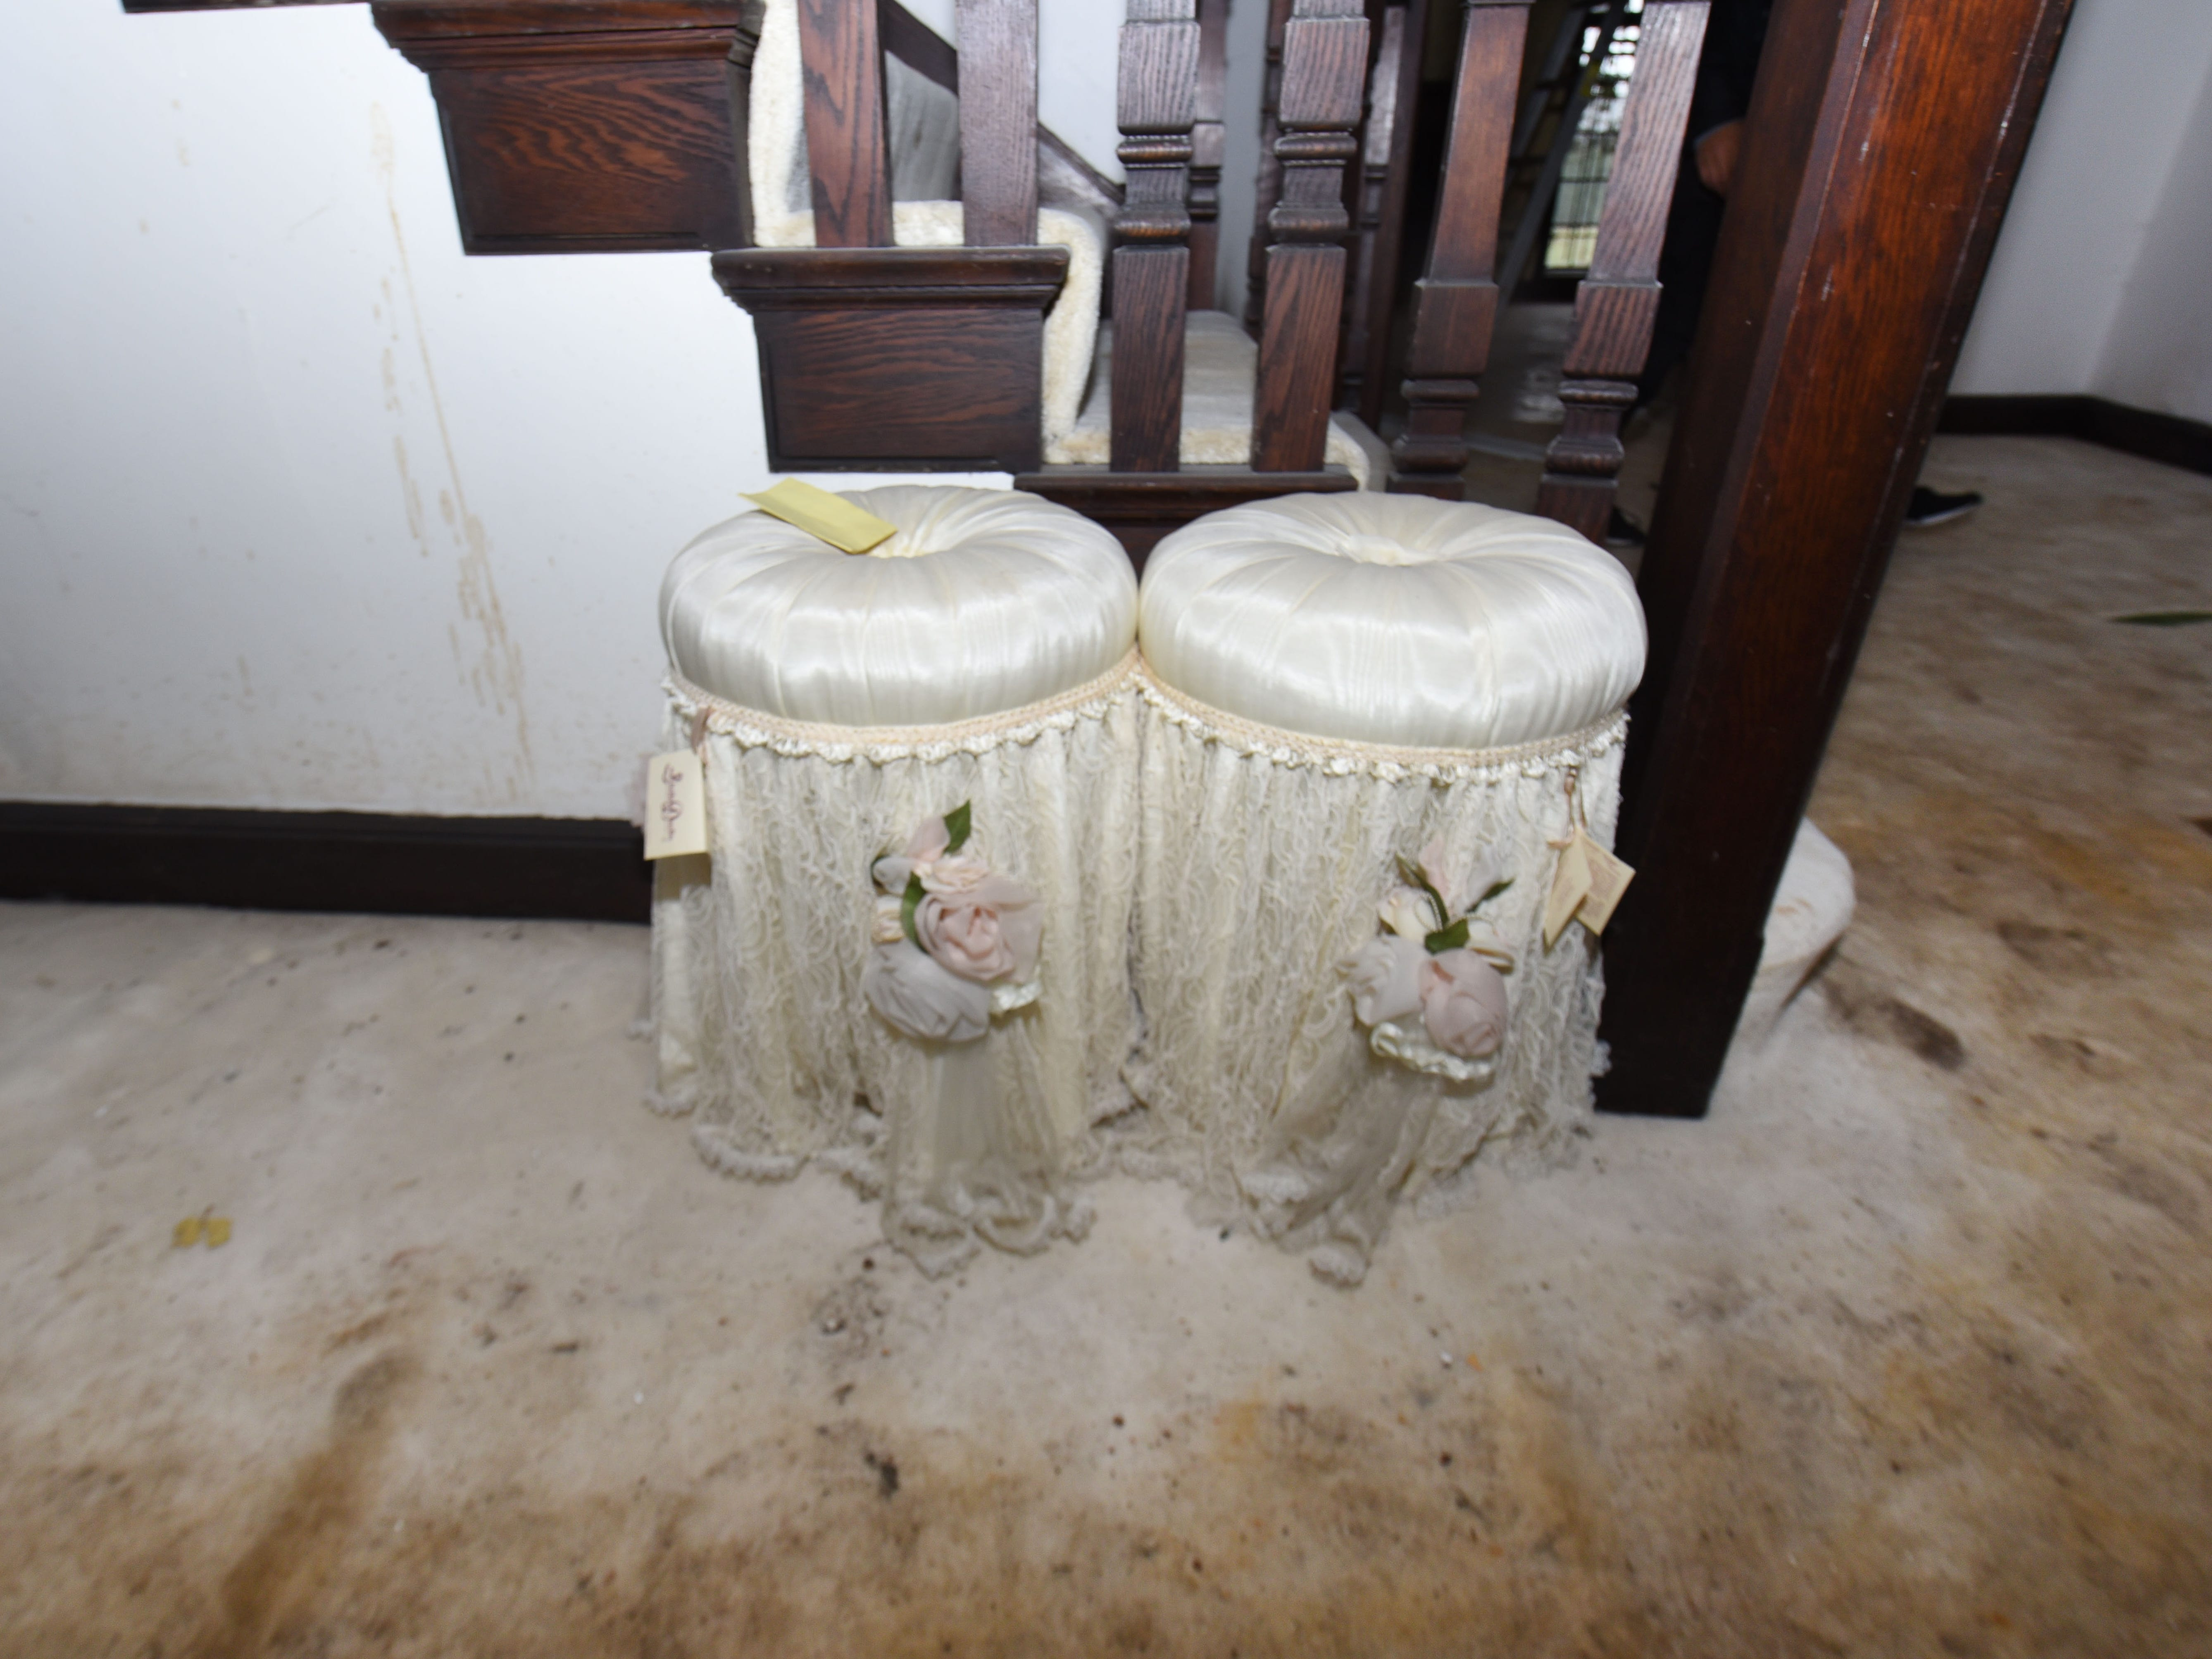 A pair of tufted seats, still bearing their sales tags, sit in the main hall.